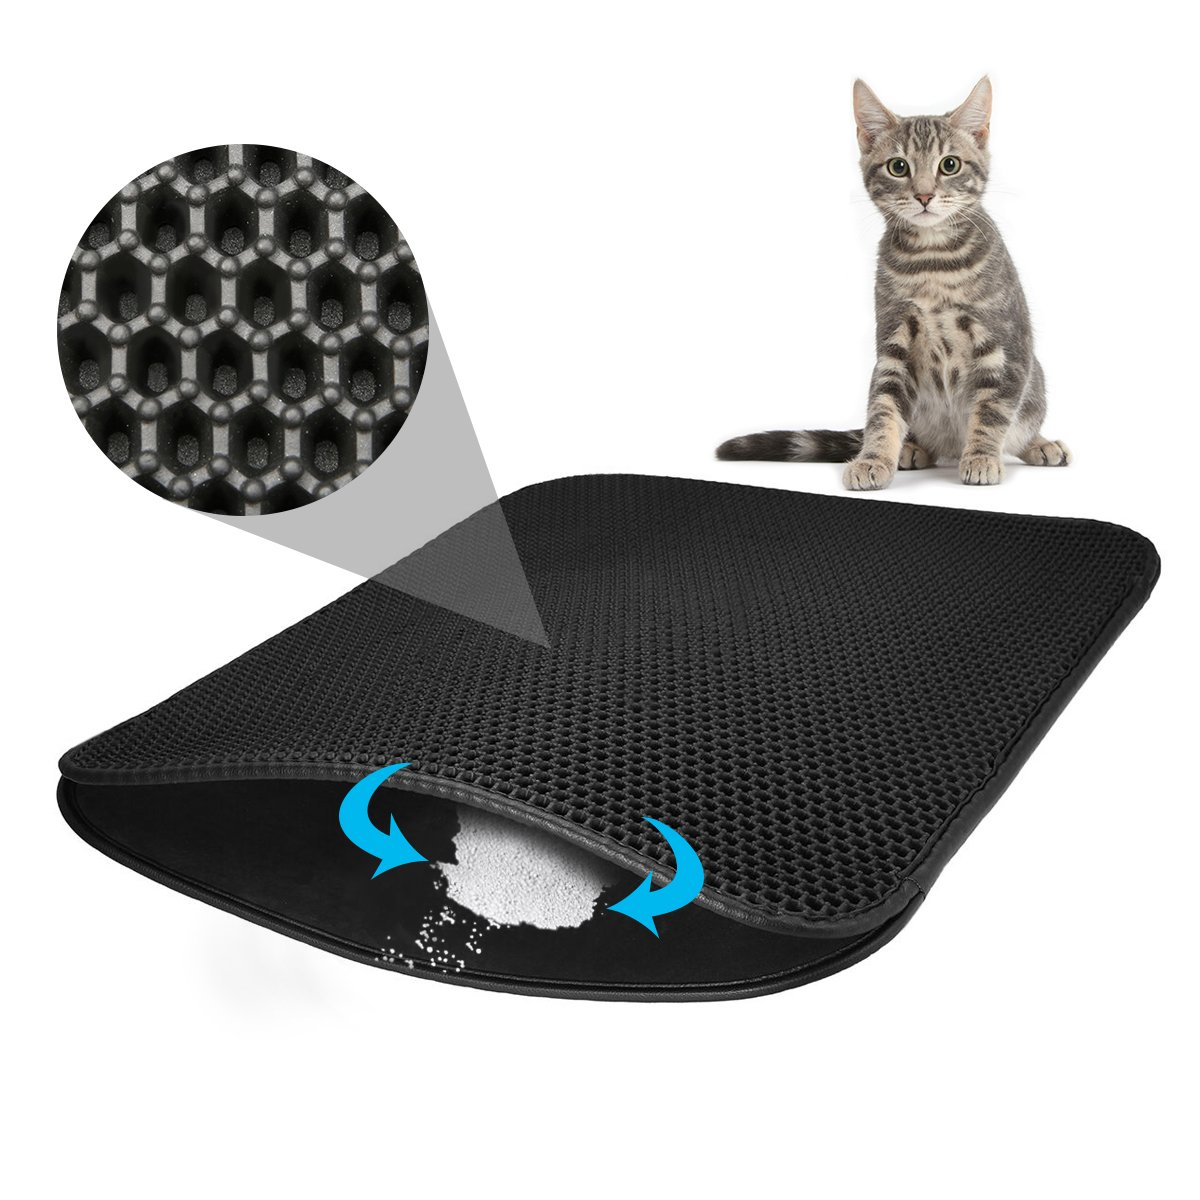 FOCUSPET Cat Litter Mat Cat Litter Trapper,Large Size 30'' X 22'',Double Waterproof Layer Honeycomb Design,Best Scatter Control,Traps Litter Pan from Box and Paws